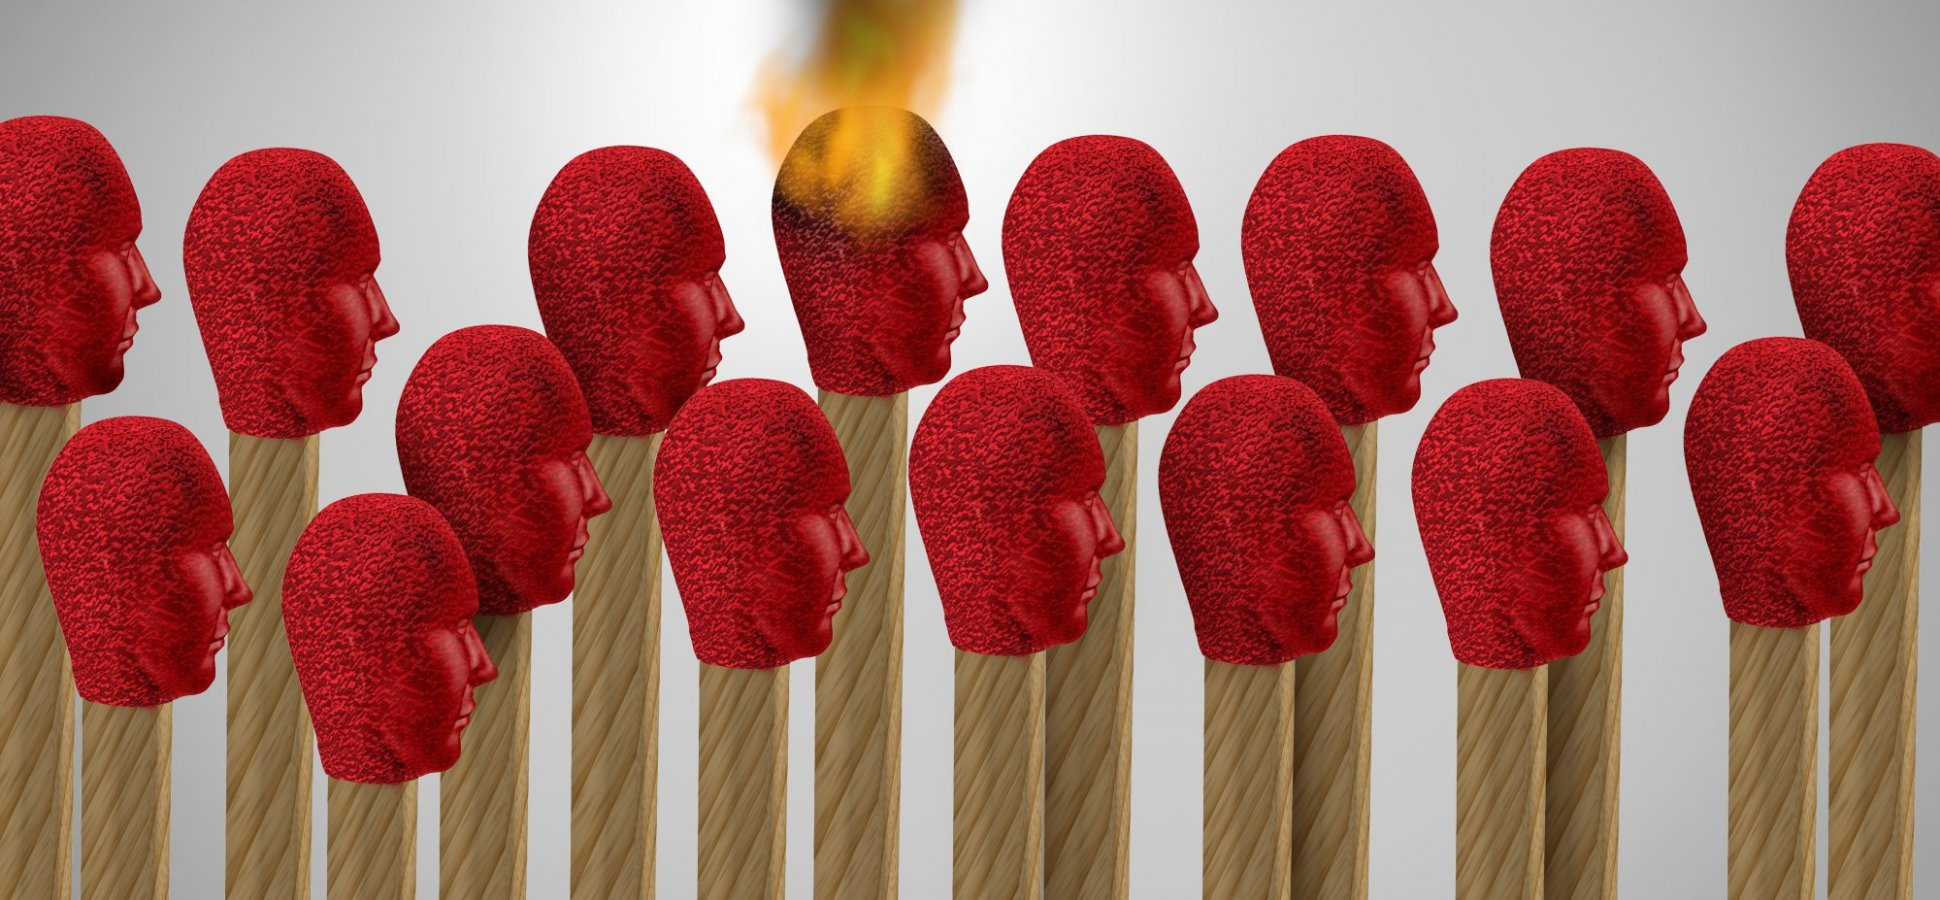 Ask These 4 Questions To Determine If You'll Get Burnout on the Job